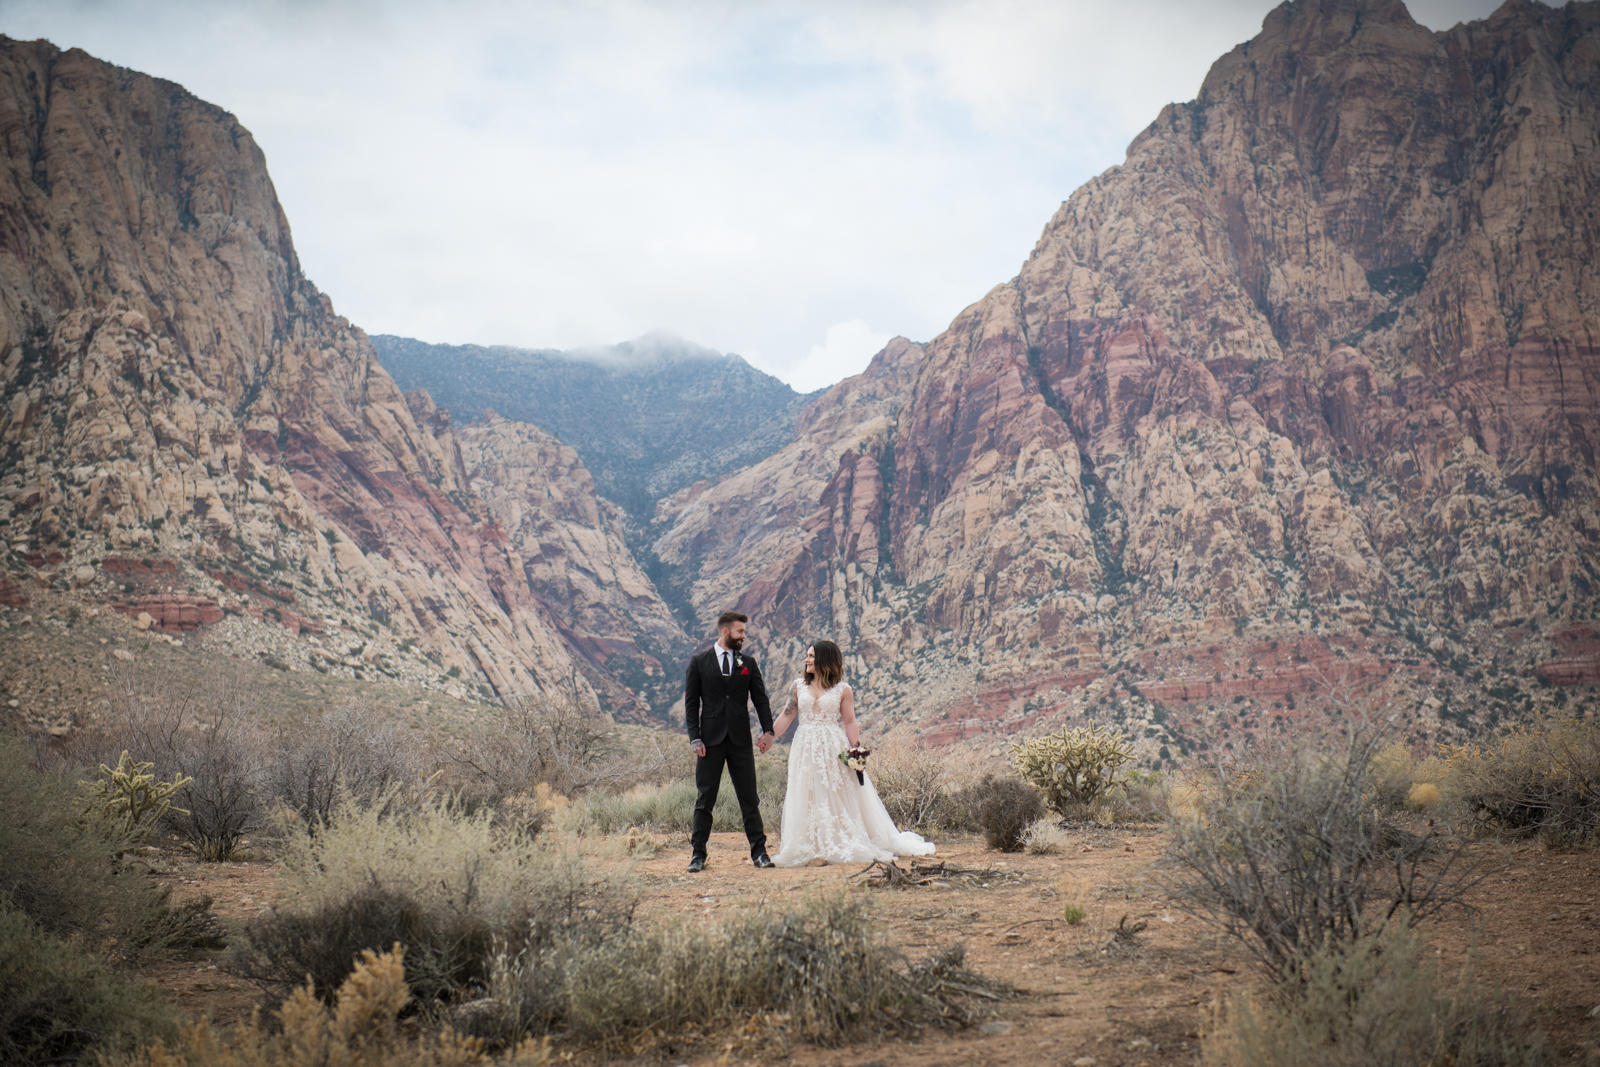 Desert-Wedding-Destination-Photography-21.jpg